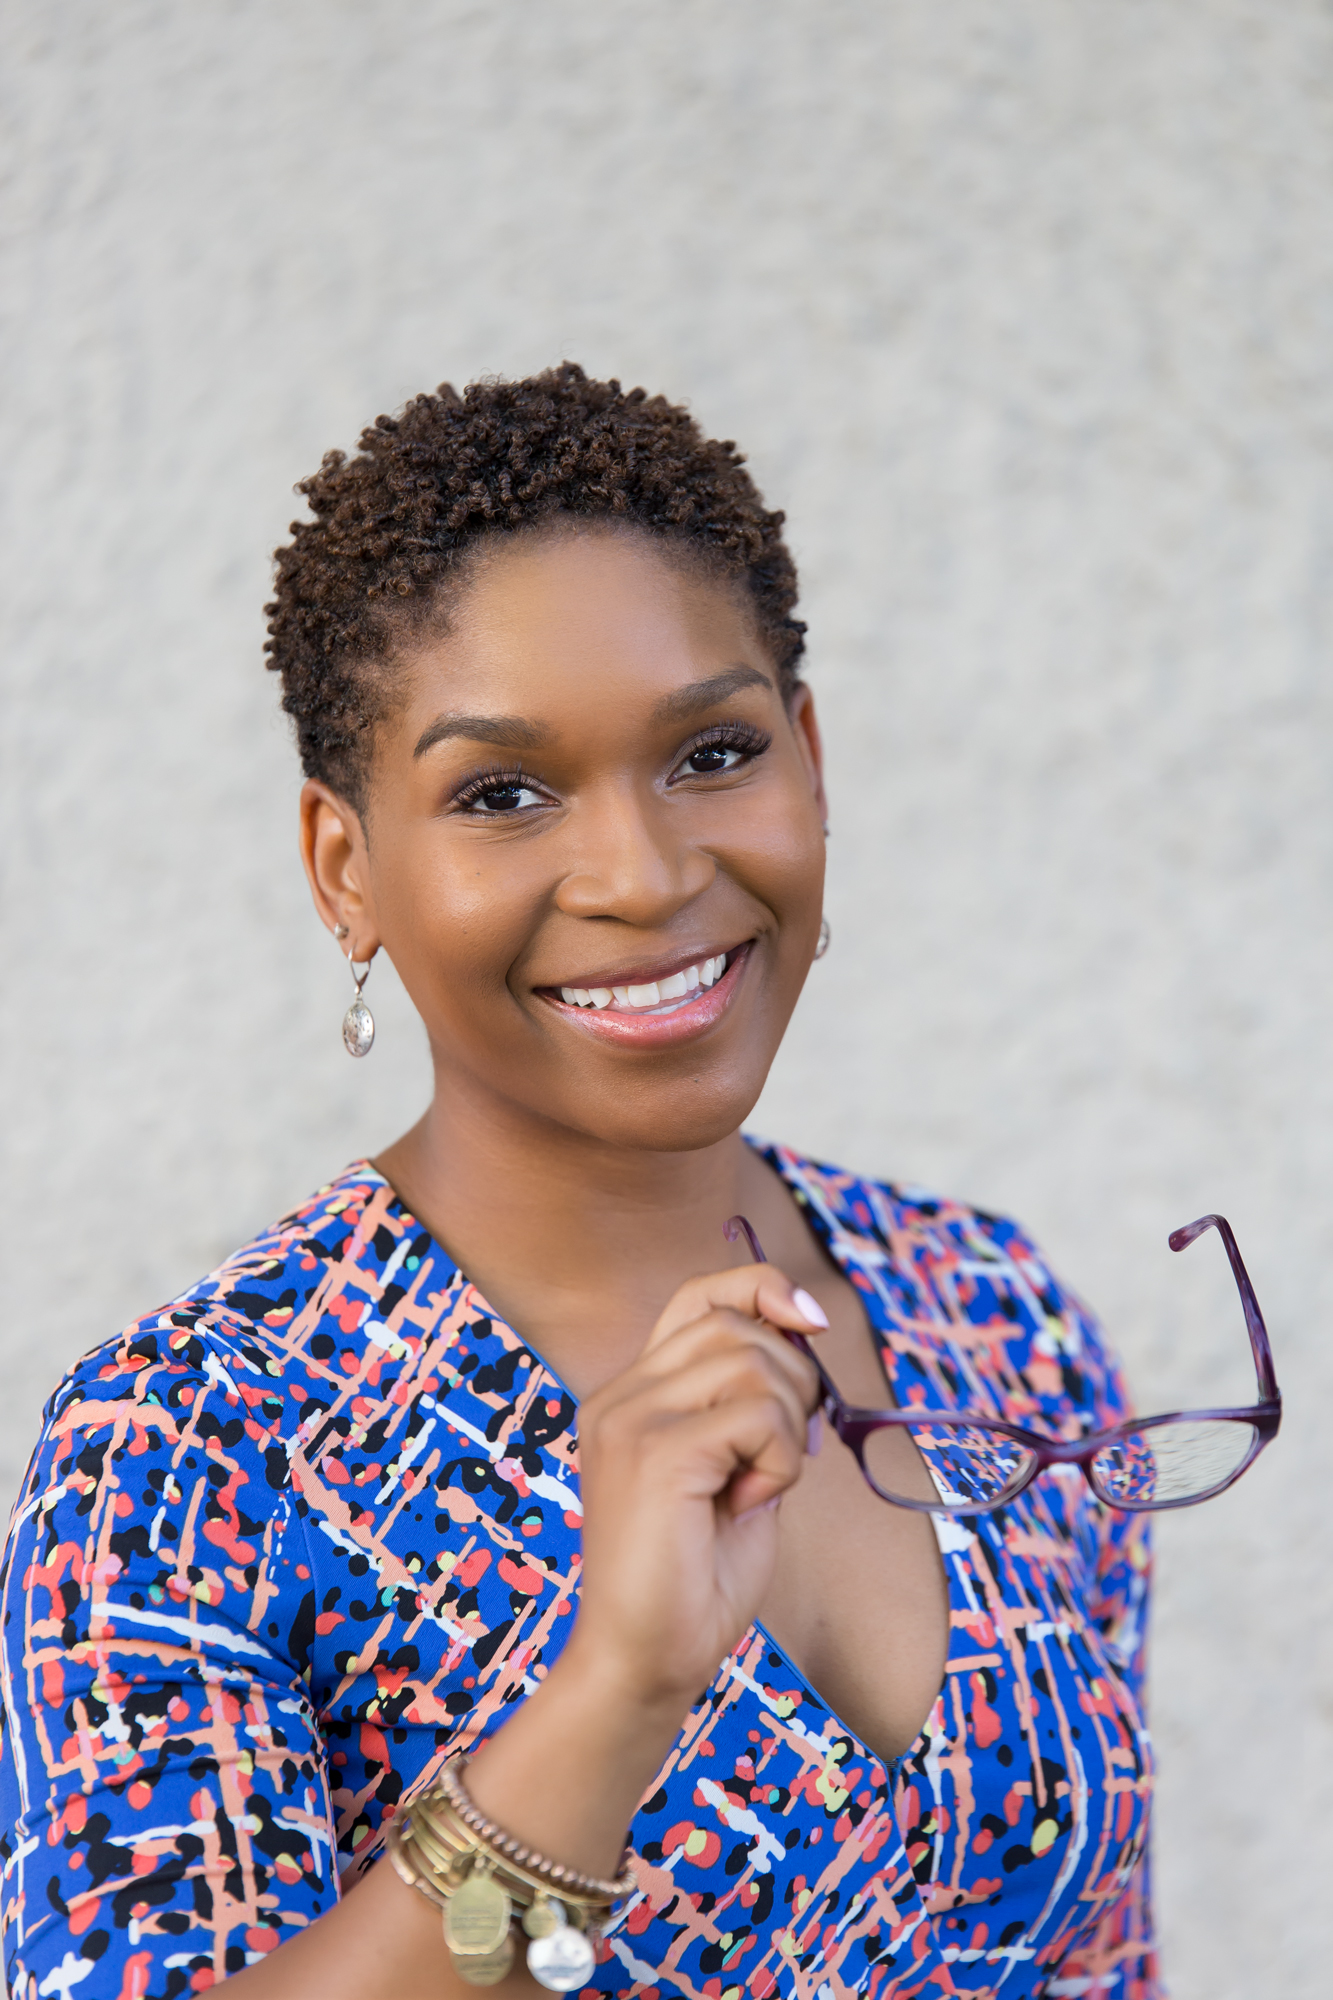 Headshot of female, African American, social media marketing consultant holding glasses and smiling.